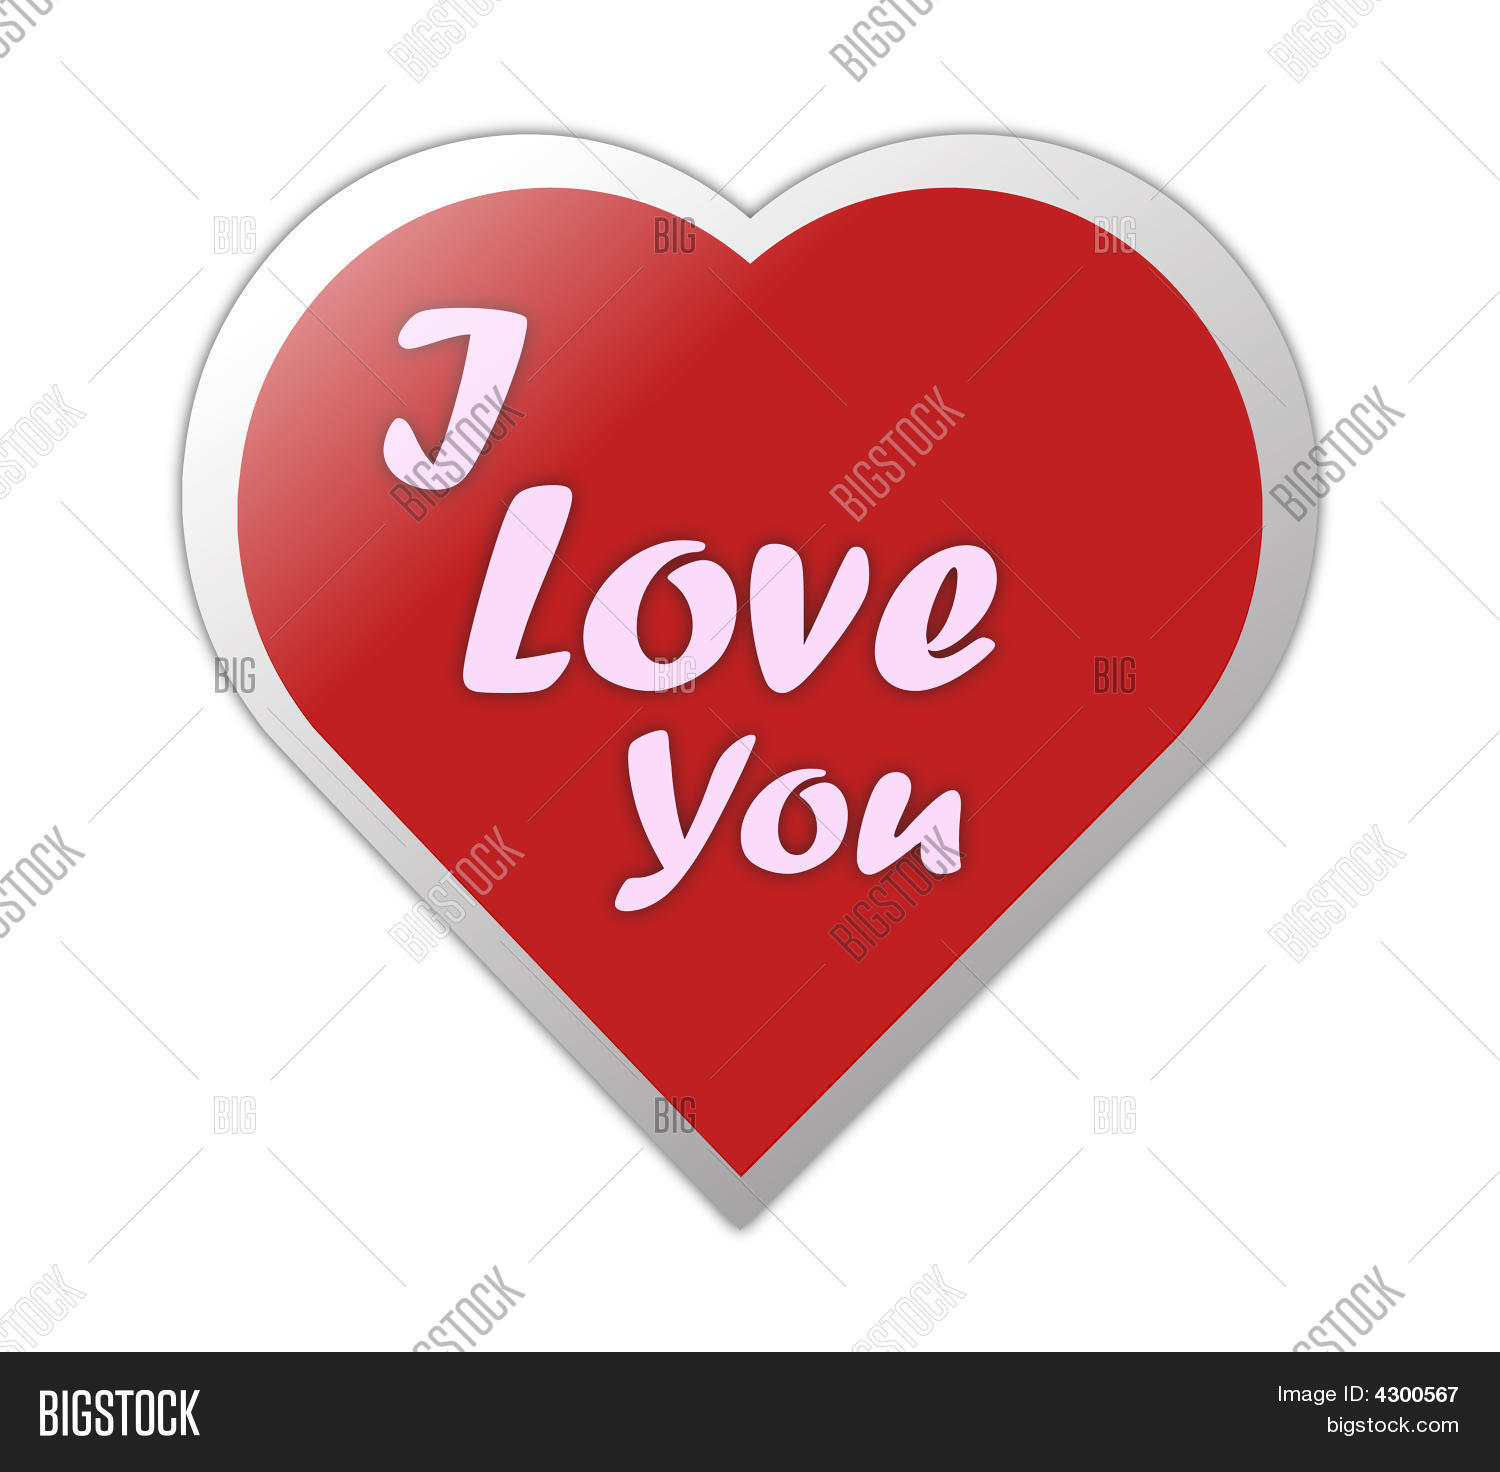 Heart Symbol Love You Image Photo Free Trial Bigstock